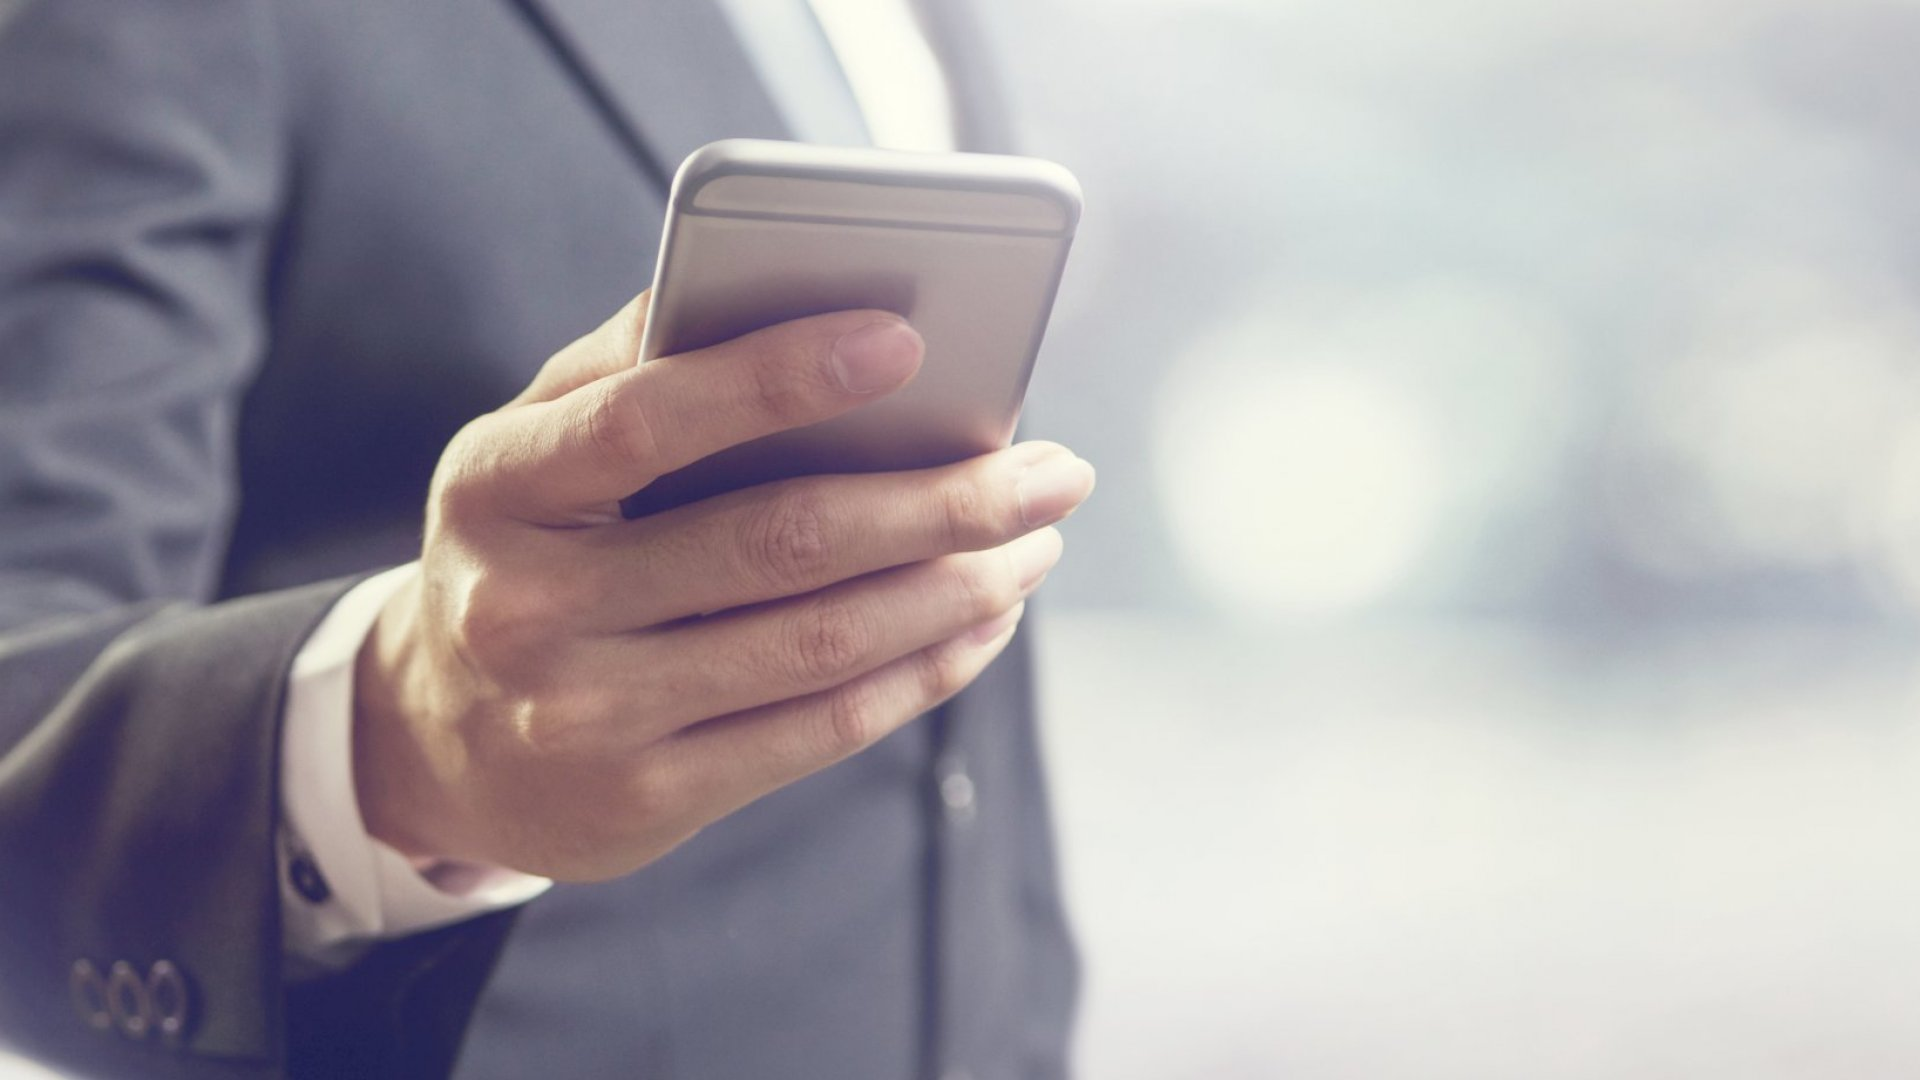 8 Bad Habits That Leave a Terrible First Impression Over the Phone--And How to Change Them